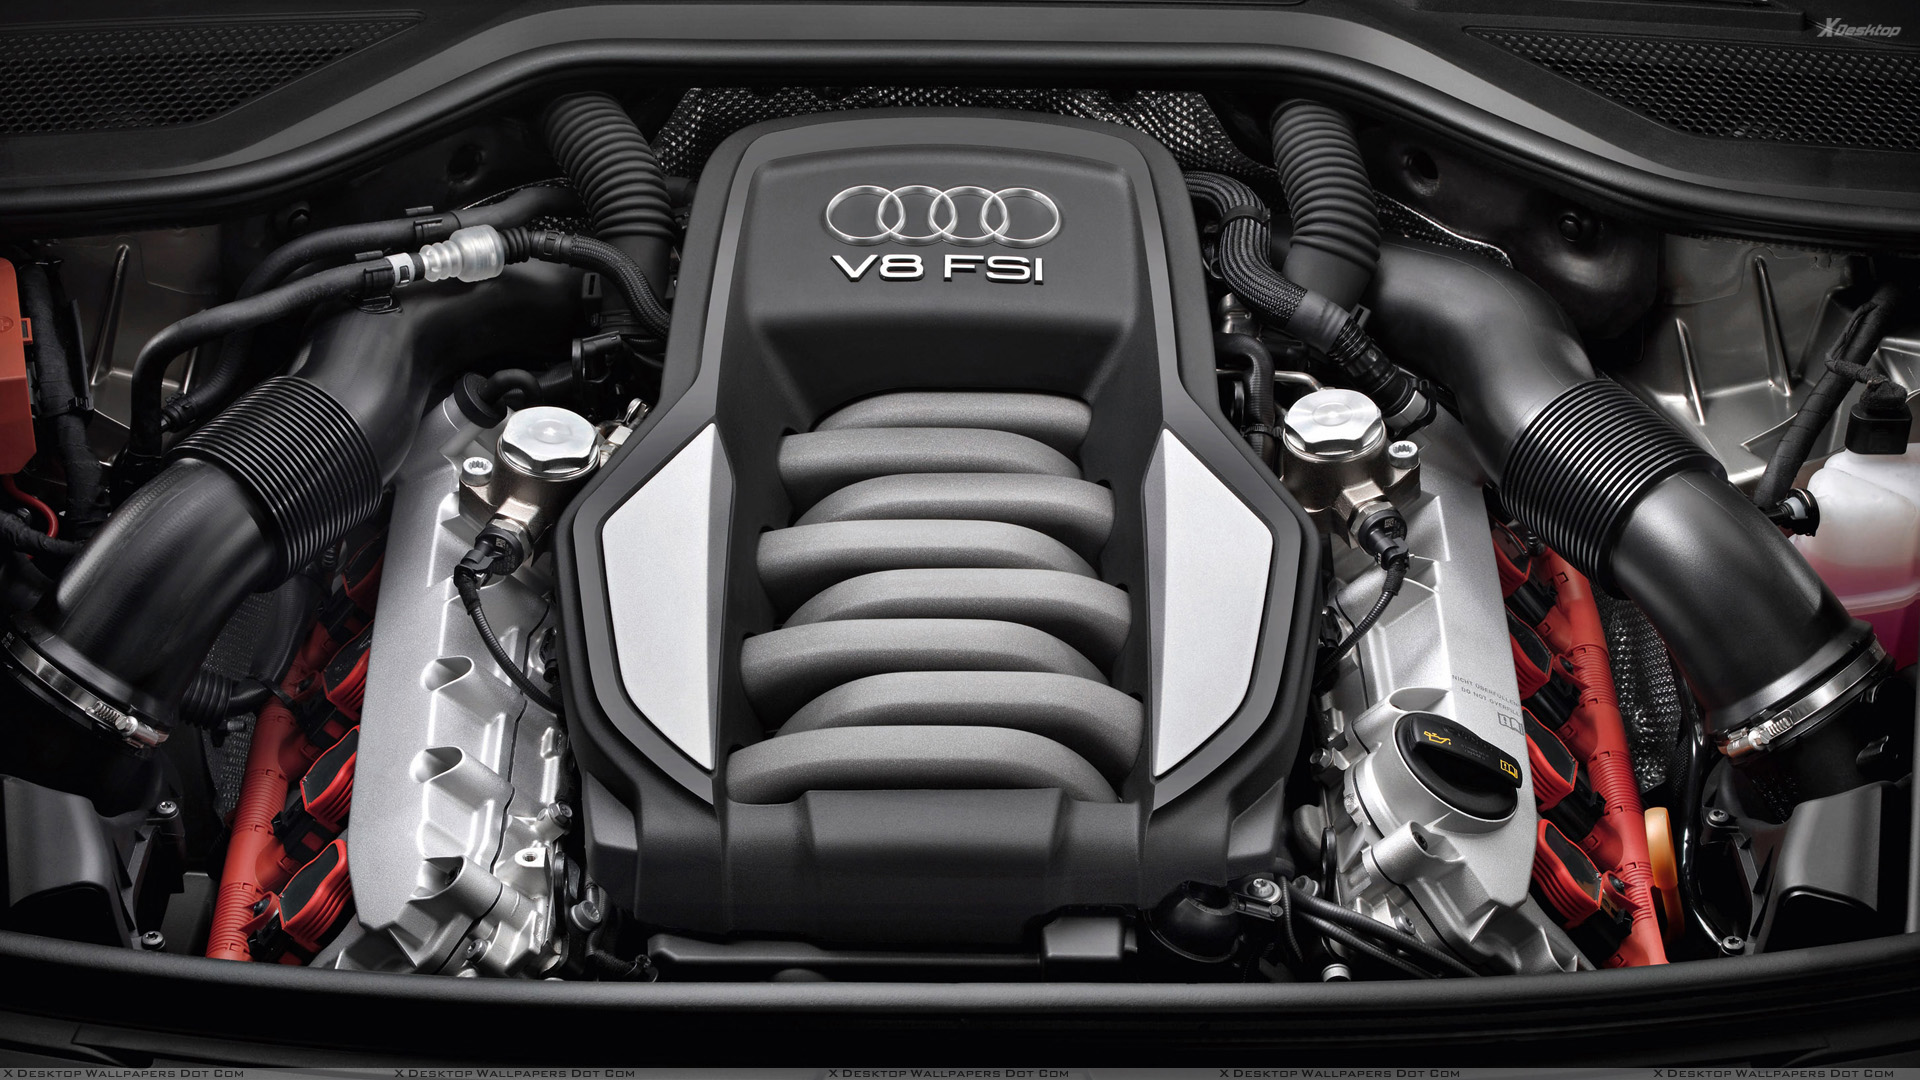 Car Engines Wallpapers Photos Images In Hd